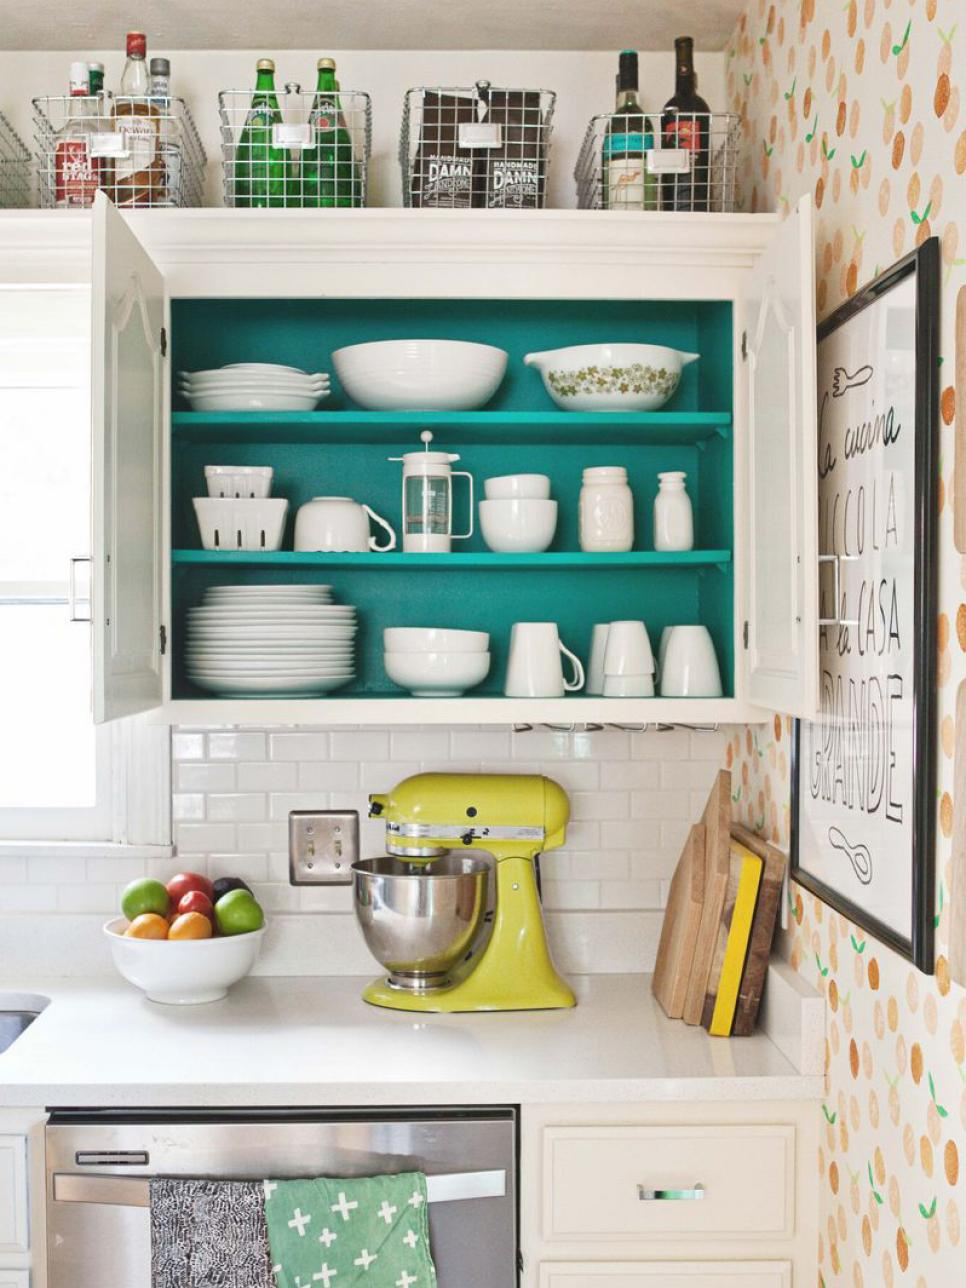 How to Update Your Farmhouse Kitchen on the Cheap - The Cottage Market